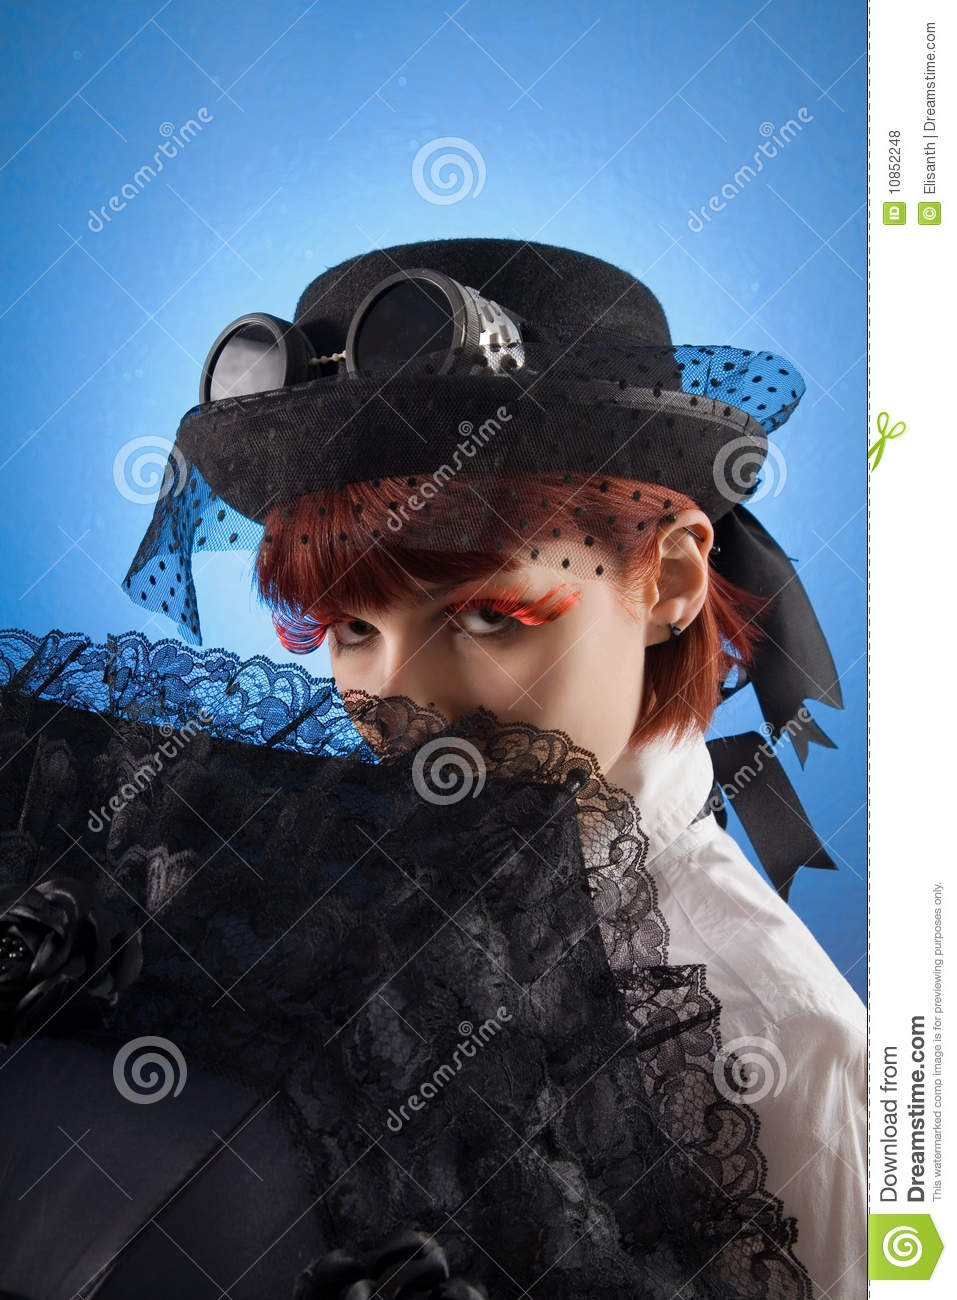 Attractive girl in Victorian style clothes